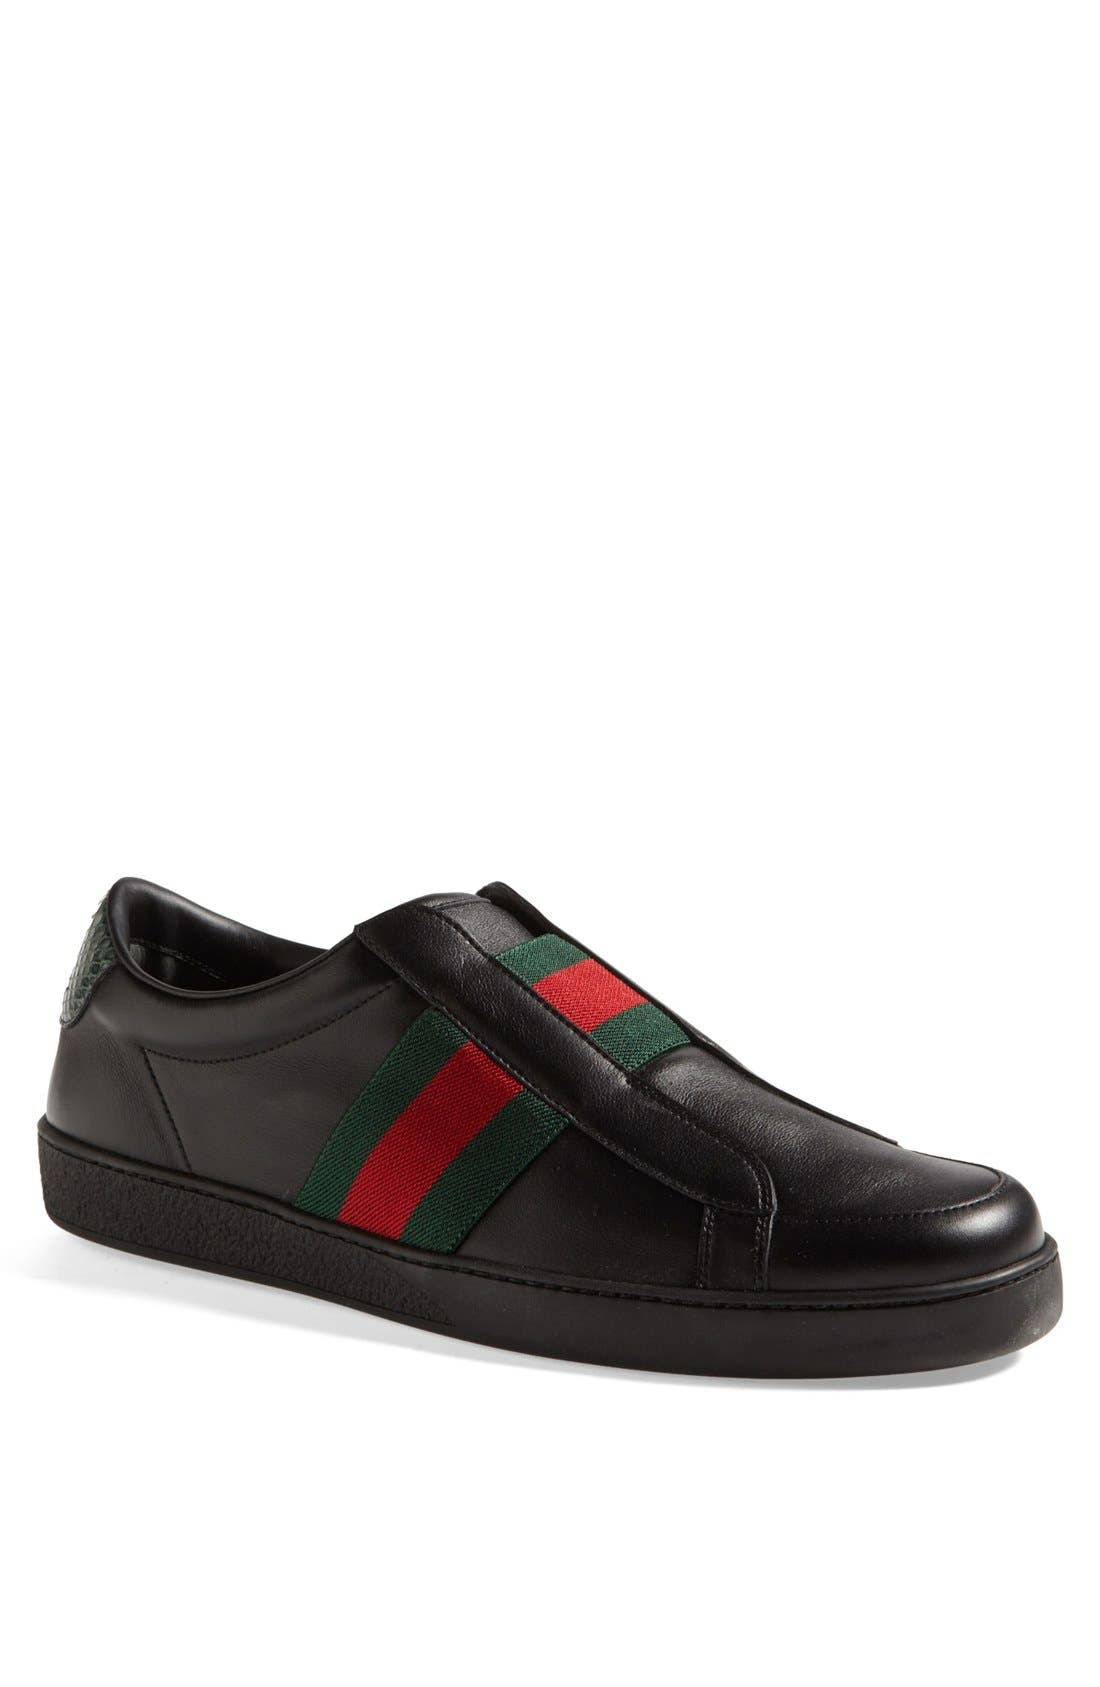 Main Image - Gucci 'Brooklyn' Slip-On